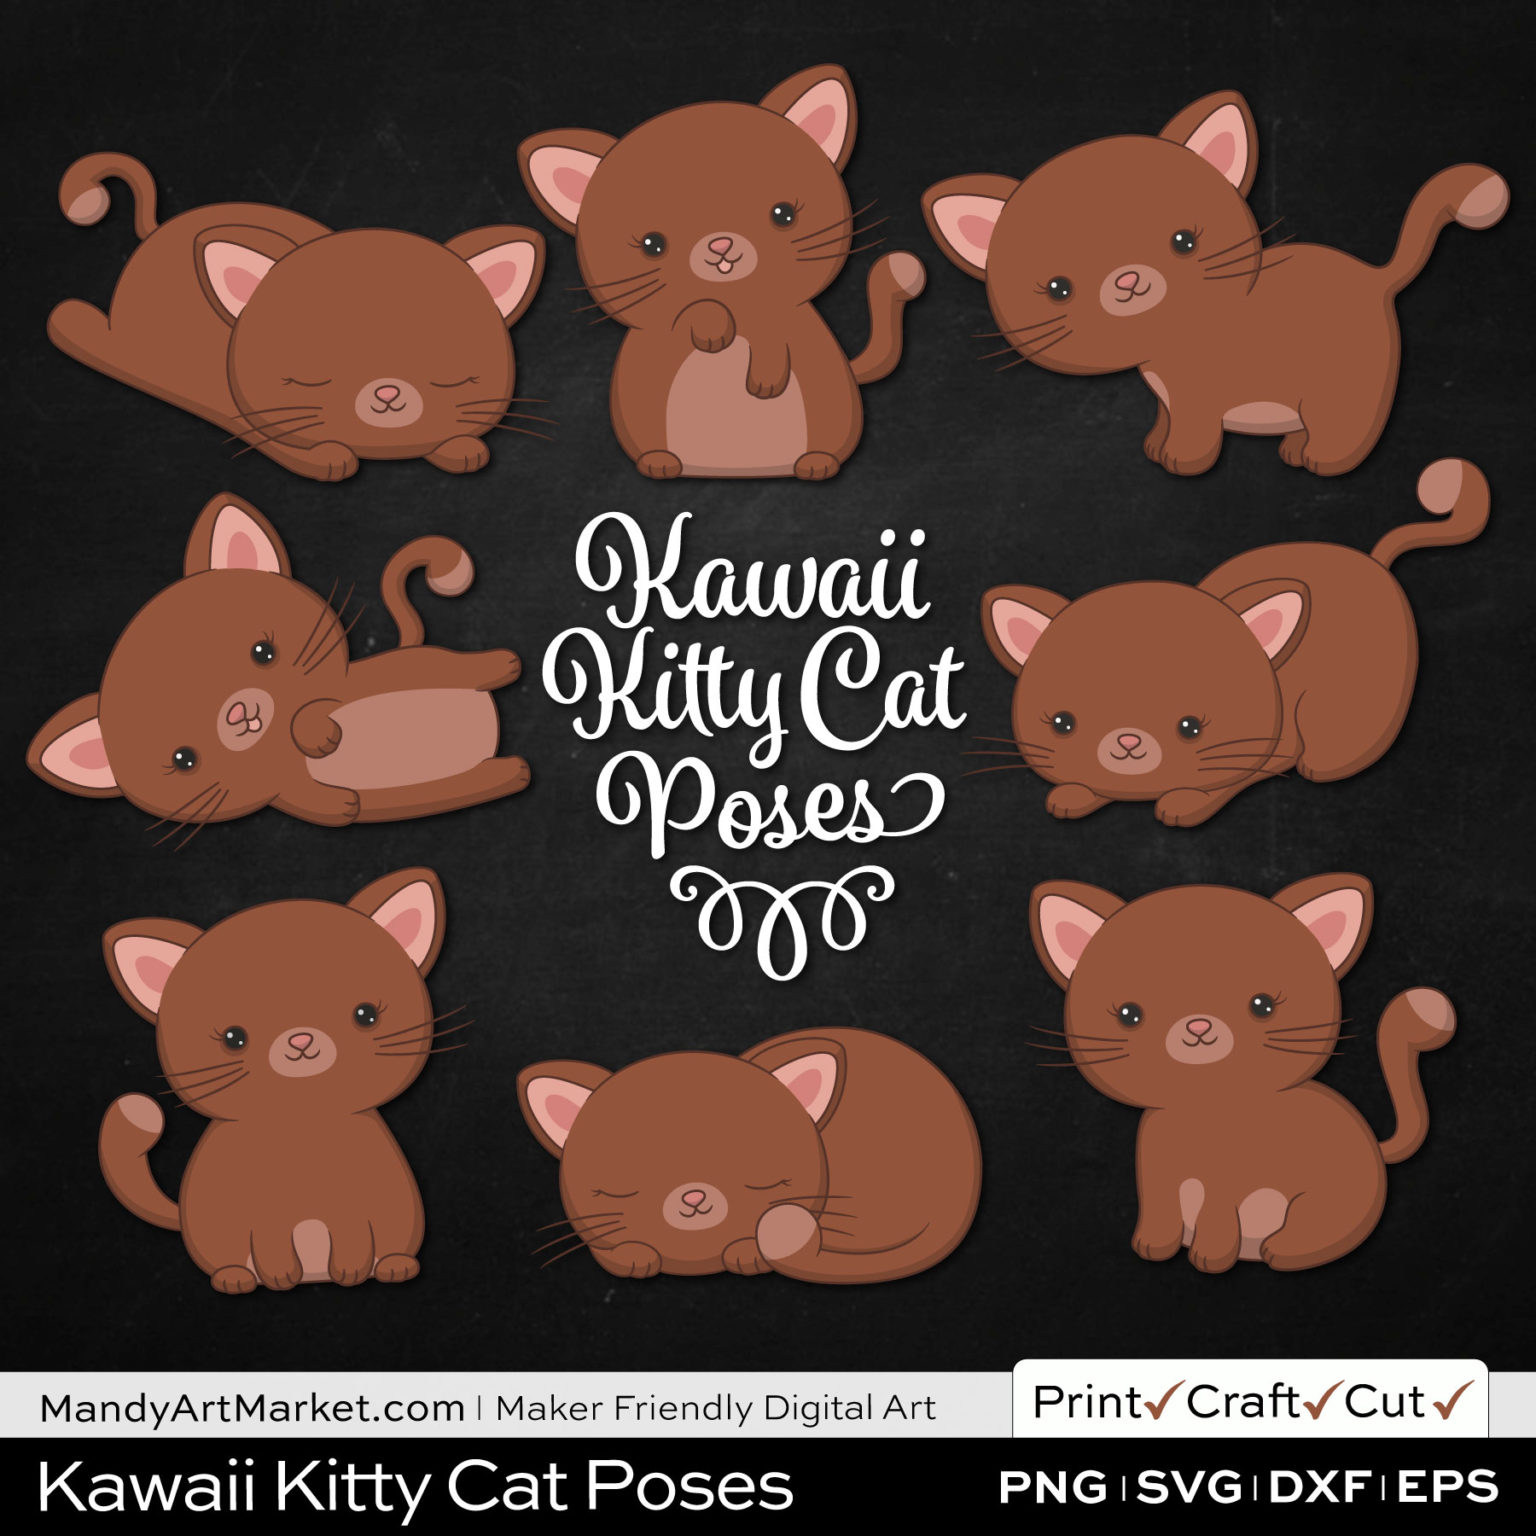 Umber Brown Kawaii Kitty Cat Poses Clipart on Black Background